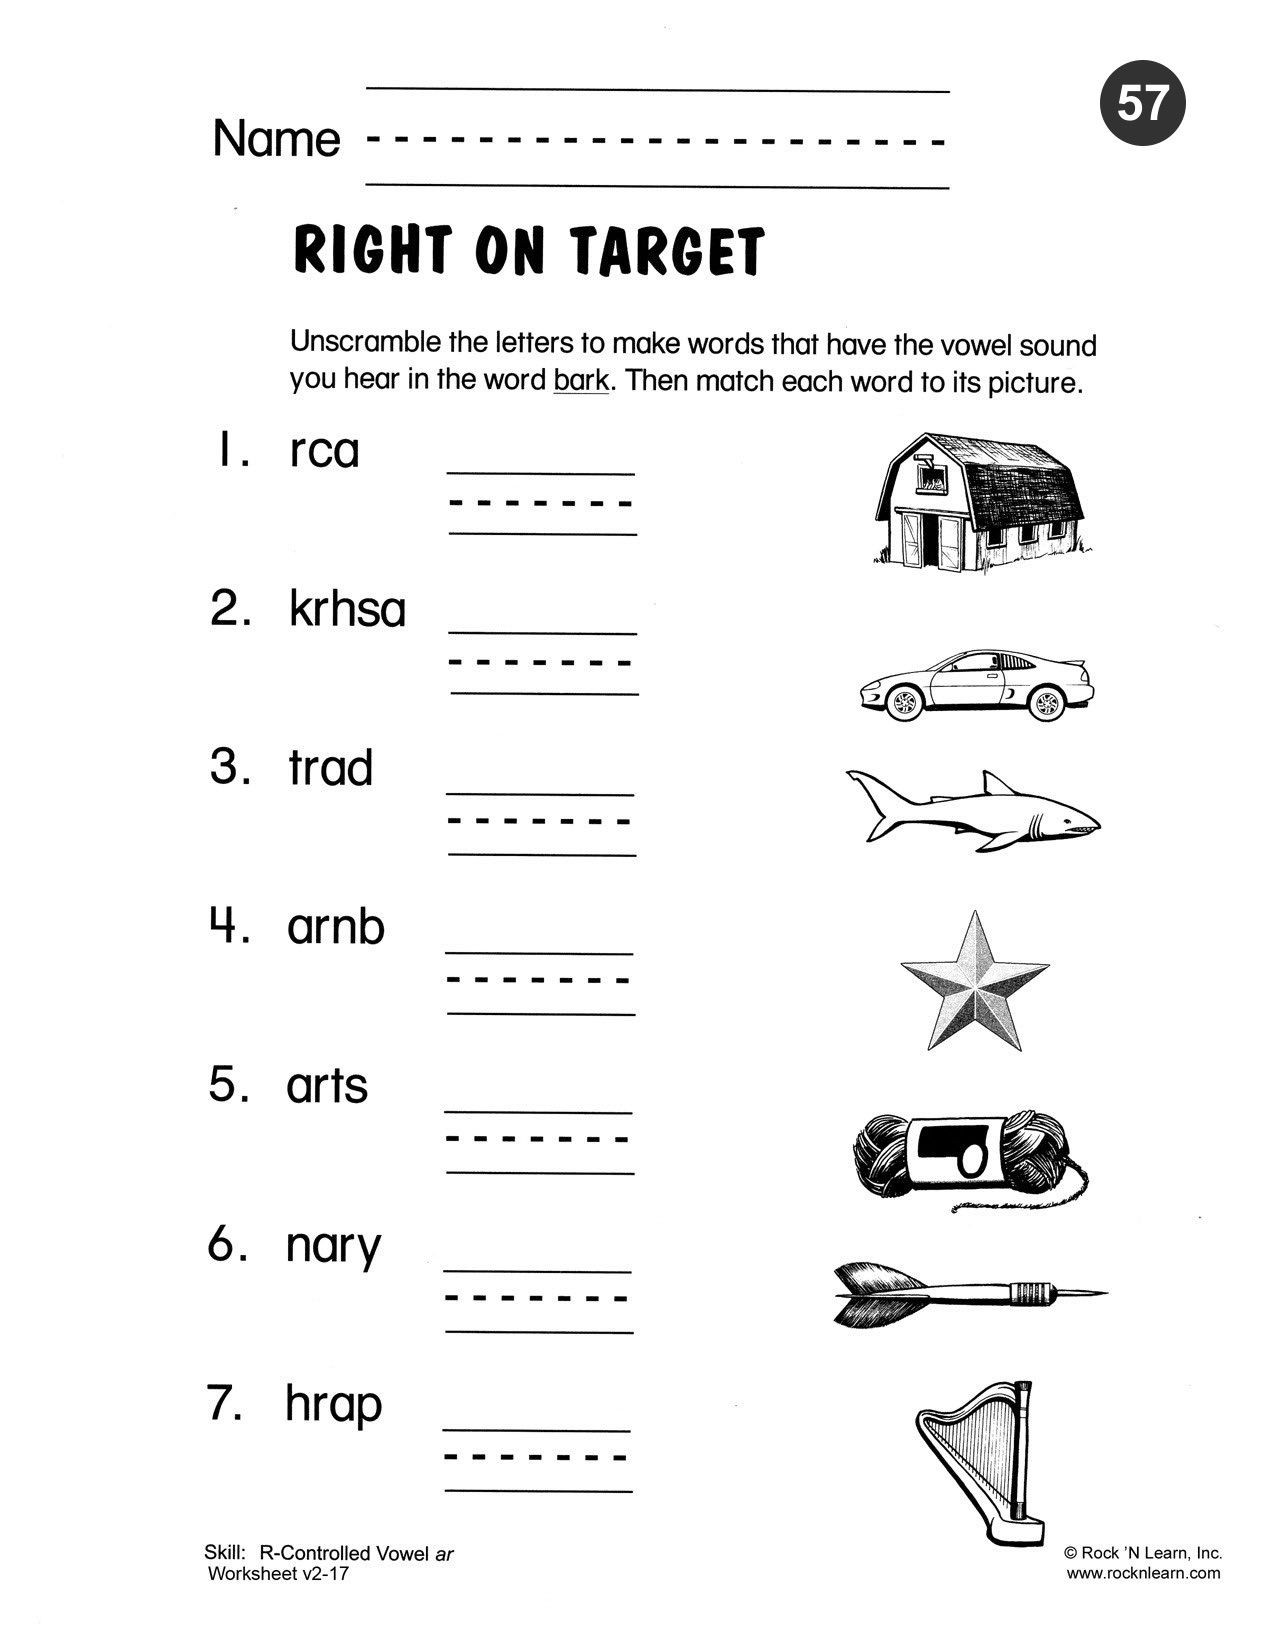 Phonic Worksheets Grade 2 Unscramble the Letters to Make the Words that Have the Vowel